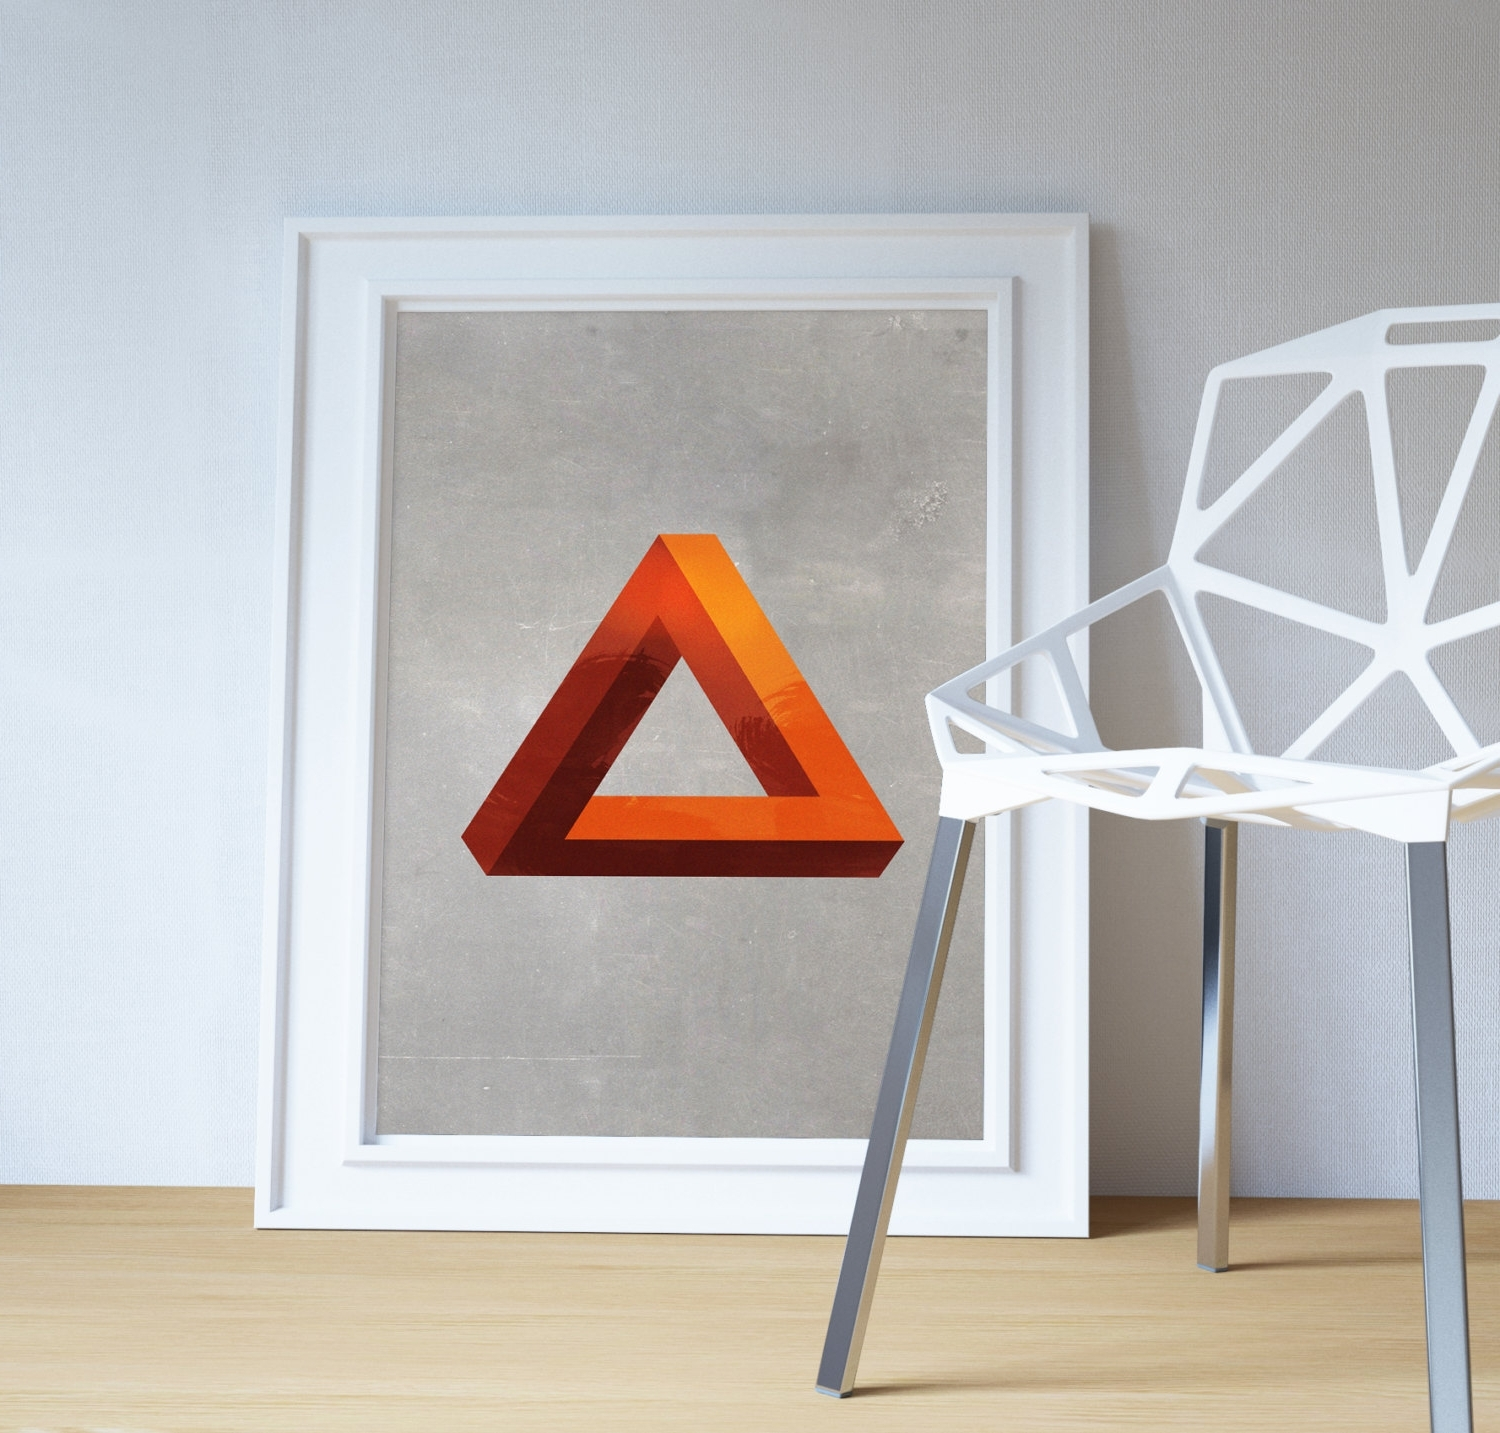 Most Recent Mid Century Modern Print Geometric Pyramid Vintage Retro Abstract For Mid Century Modern Wall Art (View 10 of 15)